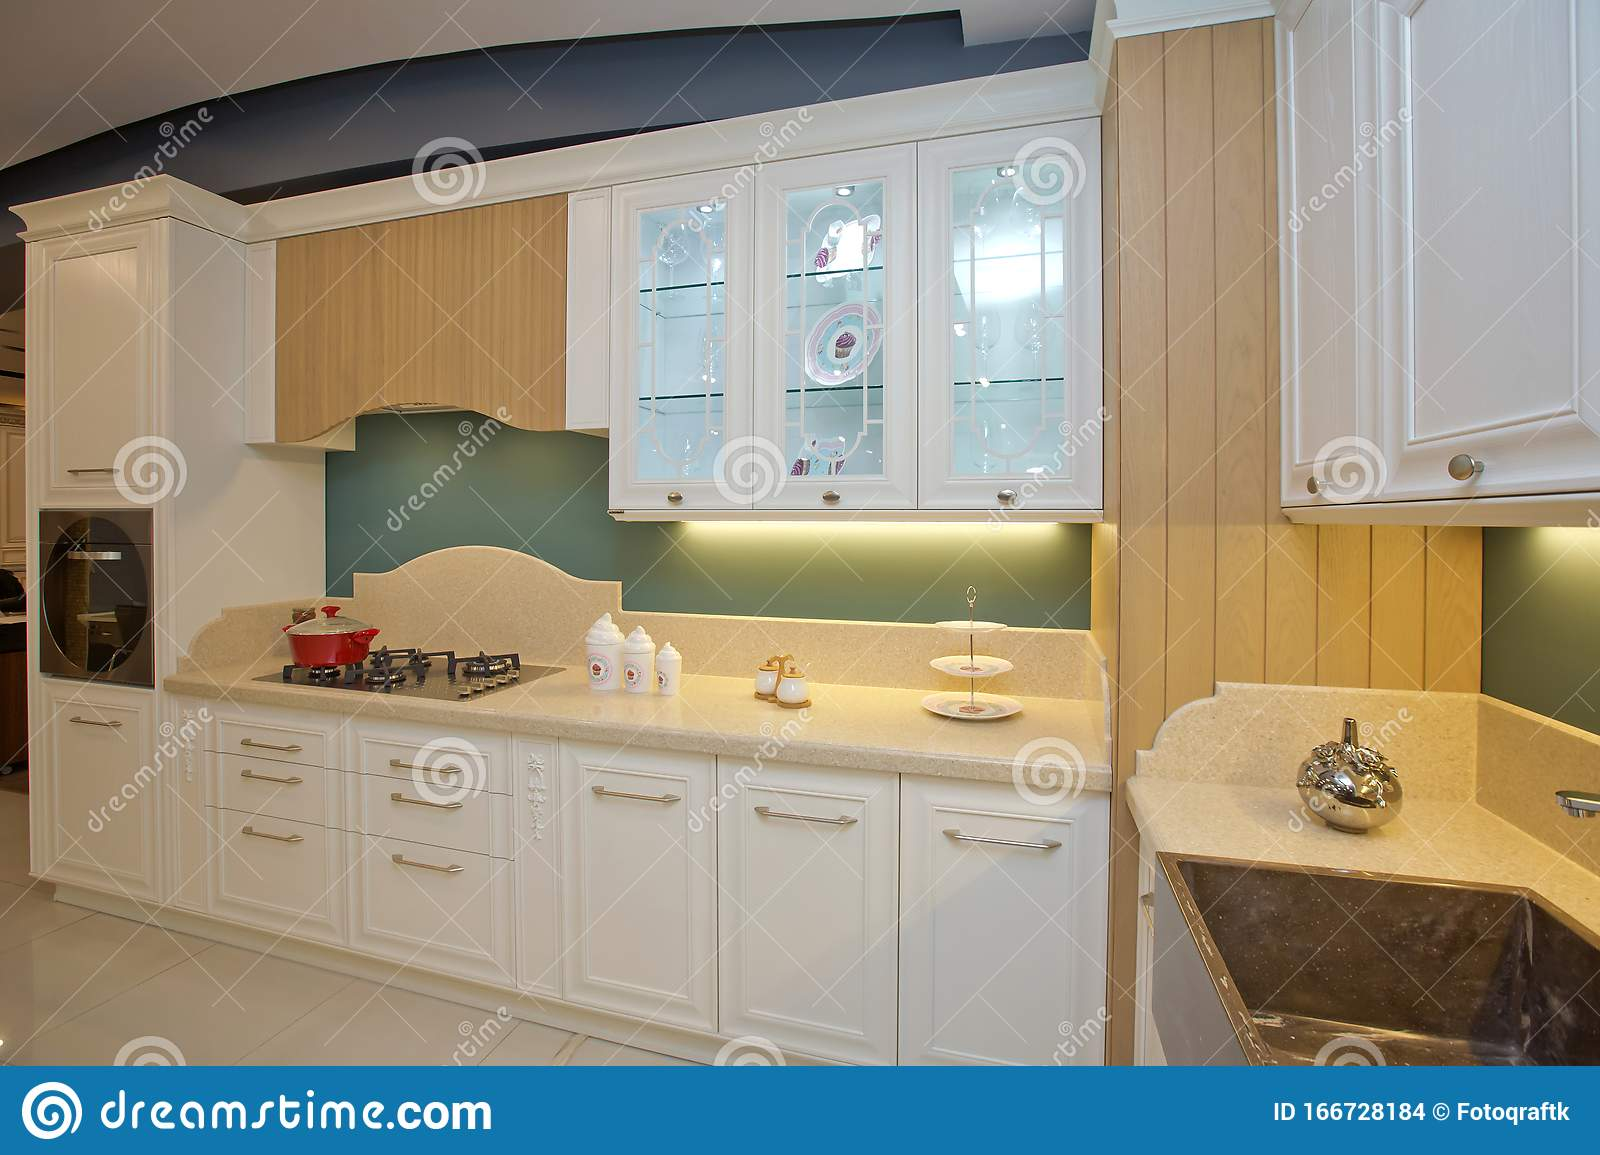 Furniture Of The Classic Italian Kitchen Modern Style Design Background Home Decoration Modern Home Interior Modern Kitchen Editorial Stock Image Image Of Design Domestic 166728184